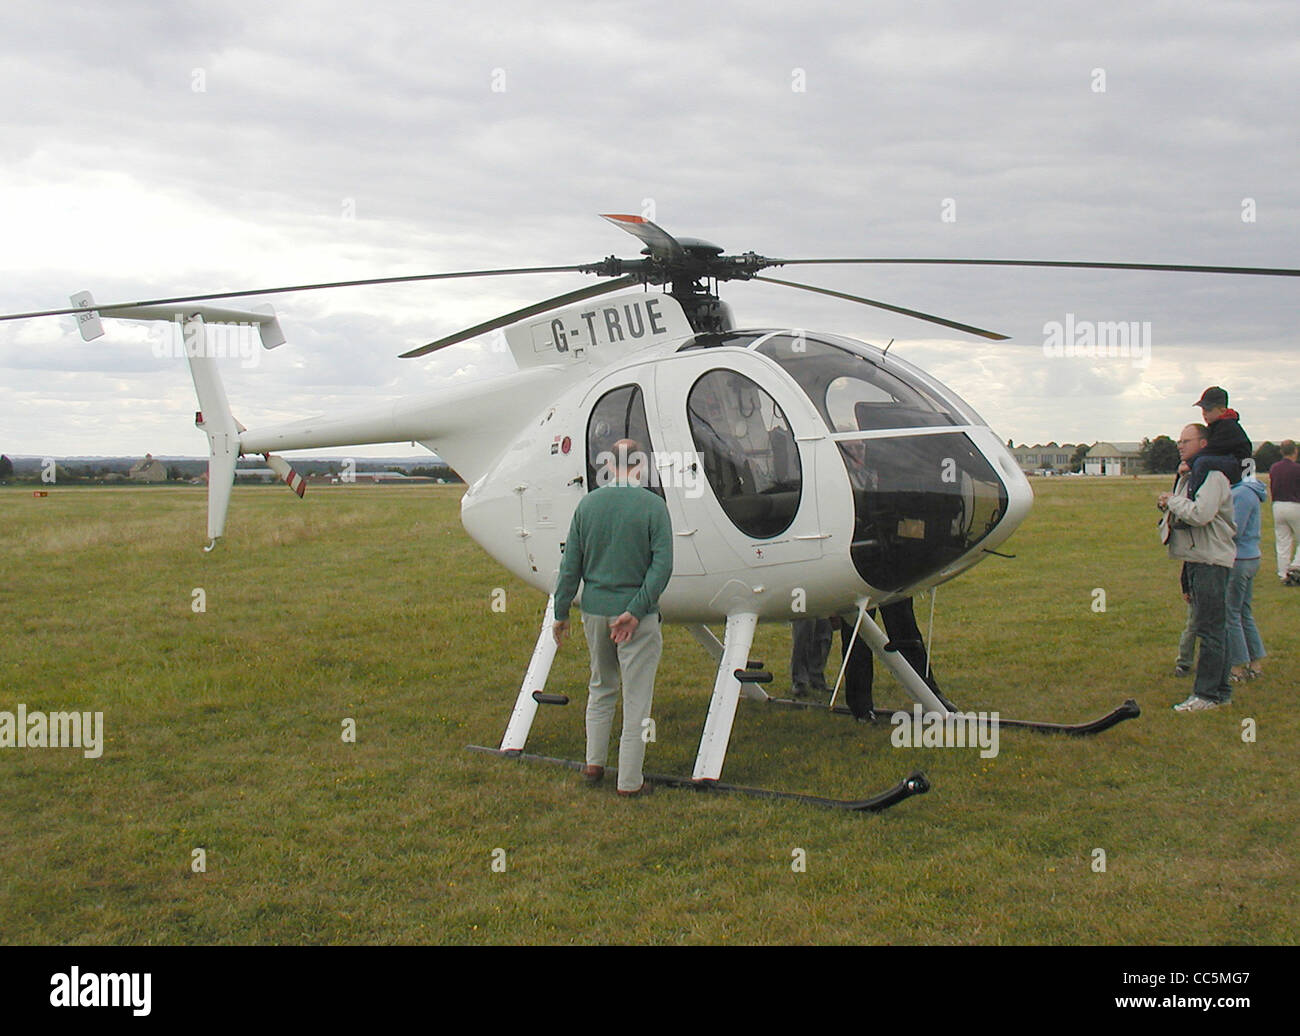 MD500E (G-TRUE, built 1992) at Kemble Airfield, Gloucestershire, England. - Stock Image